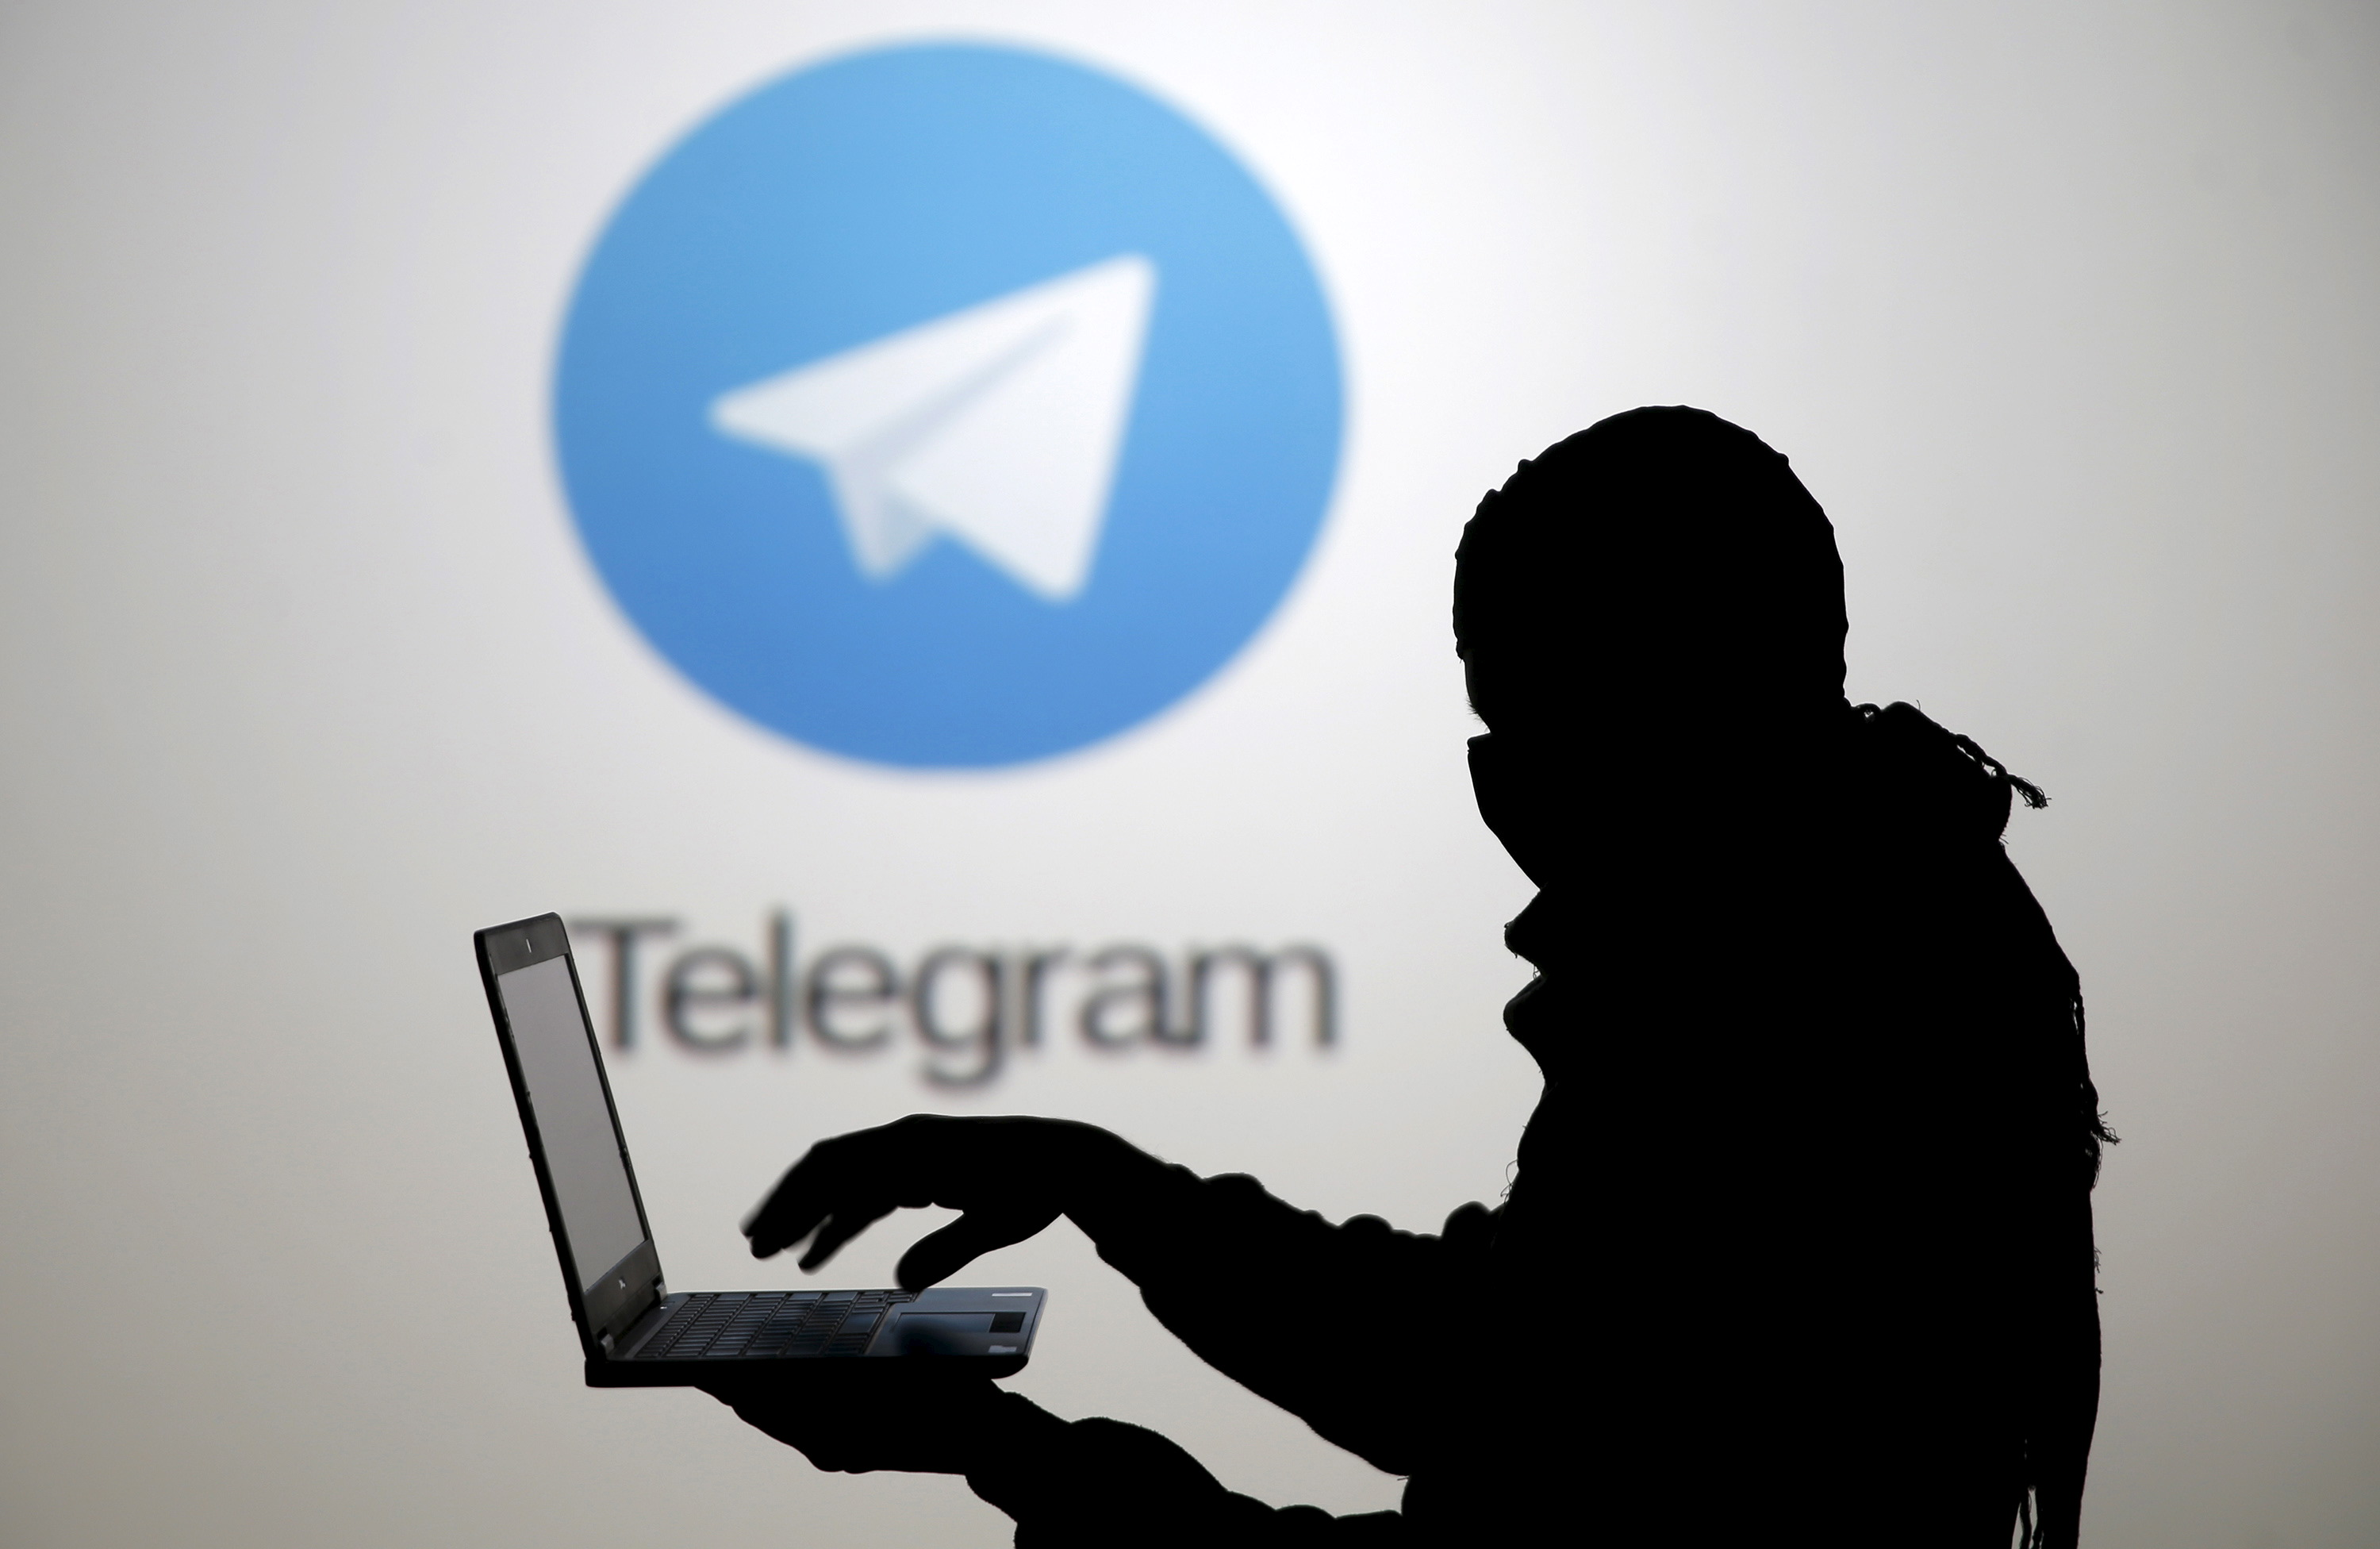 A man poses with a laptop in front of a screen showing the Telegram logo in this picture illustration taken in Zenica, Bosnia and Herzegovina November 18, 2015. The mobile messaging service Telegram, created by the exiled founder of Russia's most popular social network site, has emerged as an important new promotional and recruitment platform for Islamic State. The service, set up two years ago, has caught on in many corners of the globe as an ultra-secure way to quickly upload and share videos, texts and voice messages. It counts 60 million active users around the world. Picture taken November 18. REUTERS/Dado Ruvic - RTS7W3P